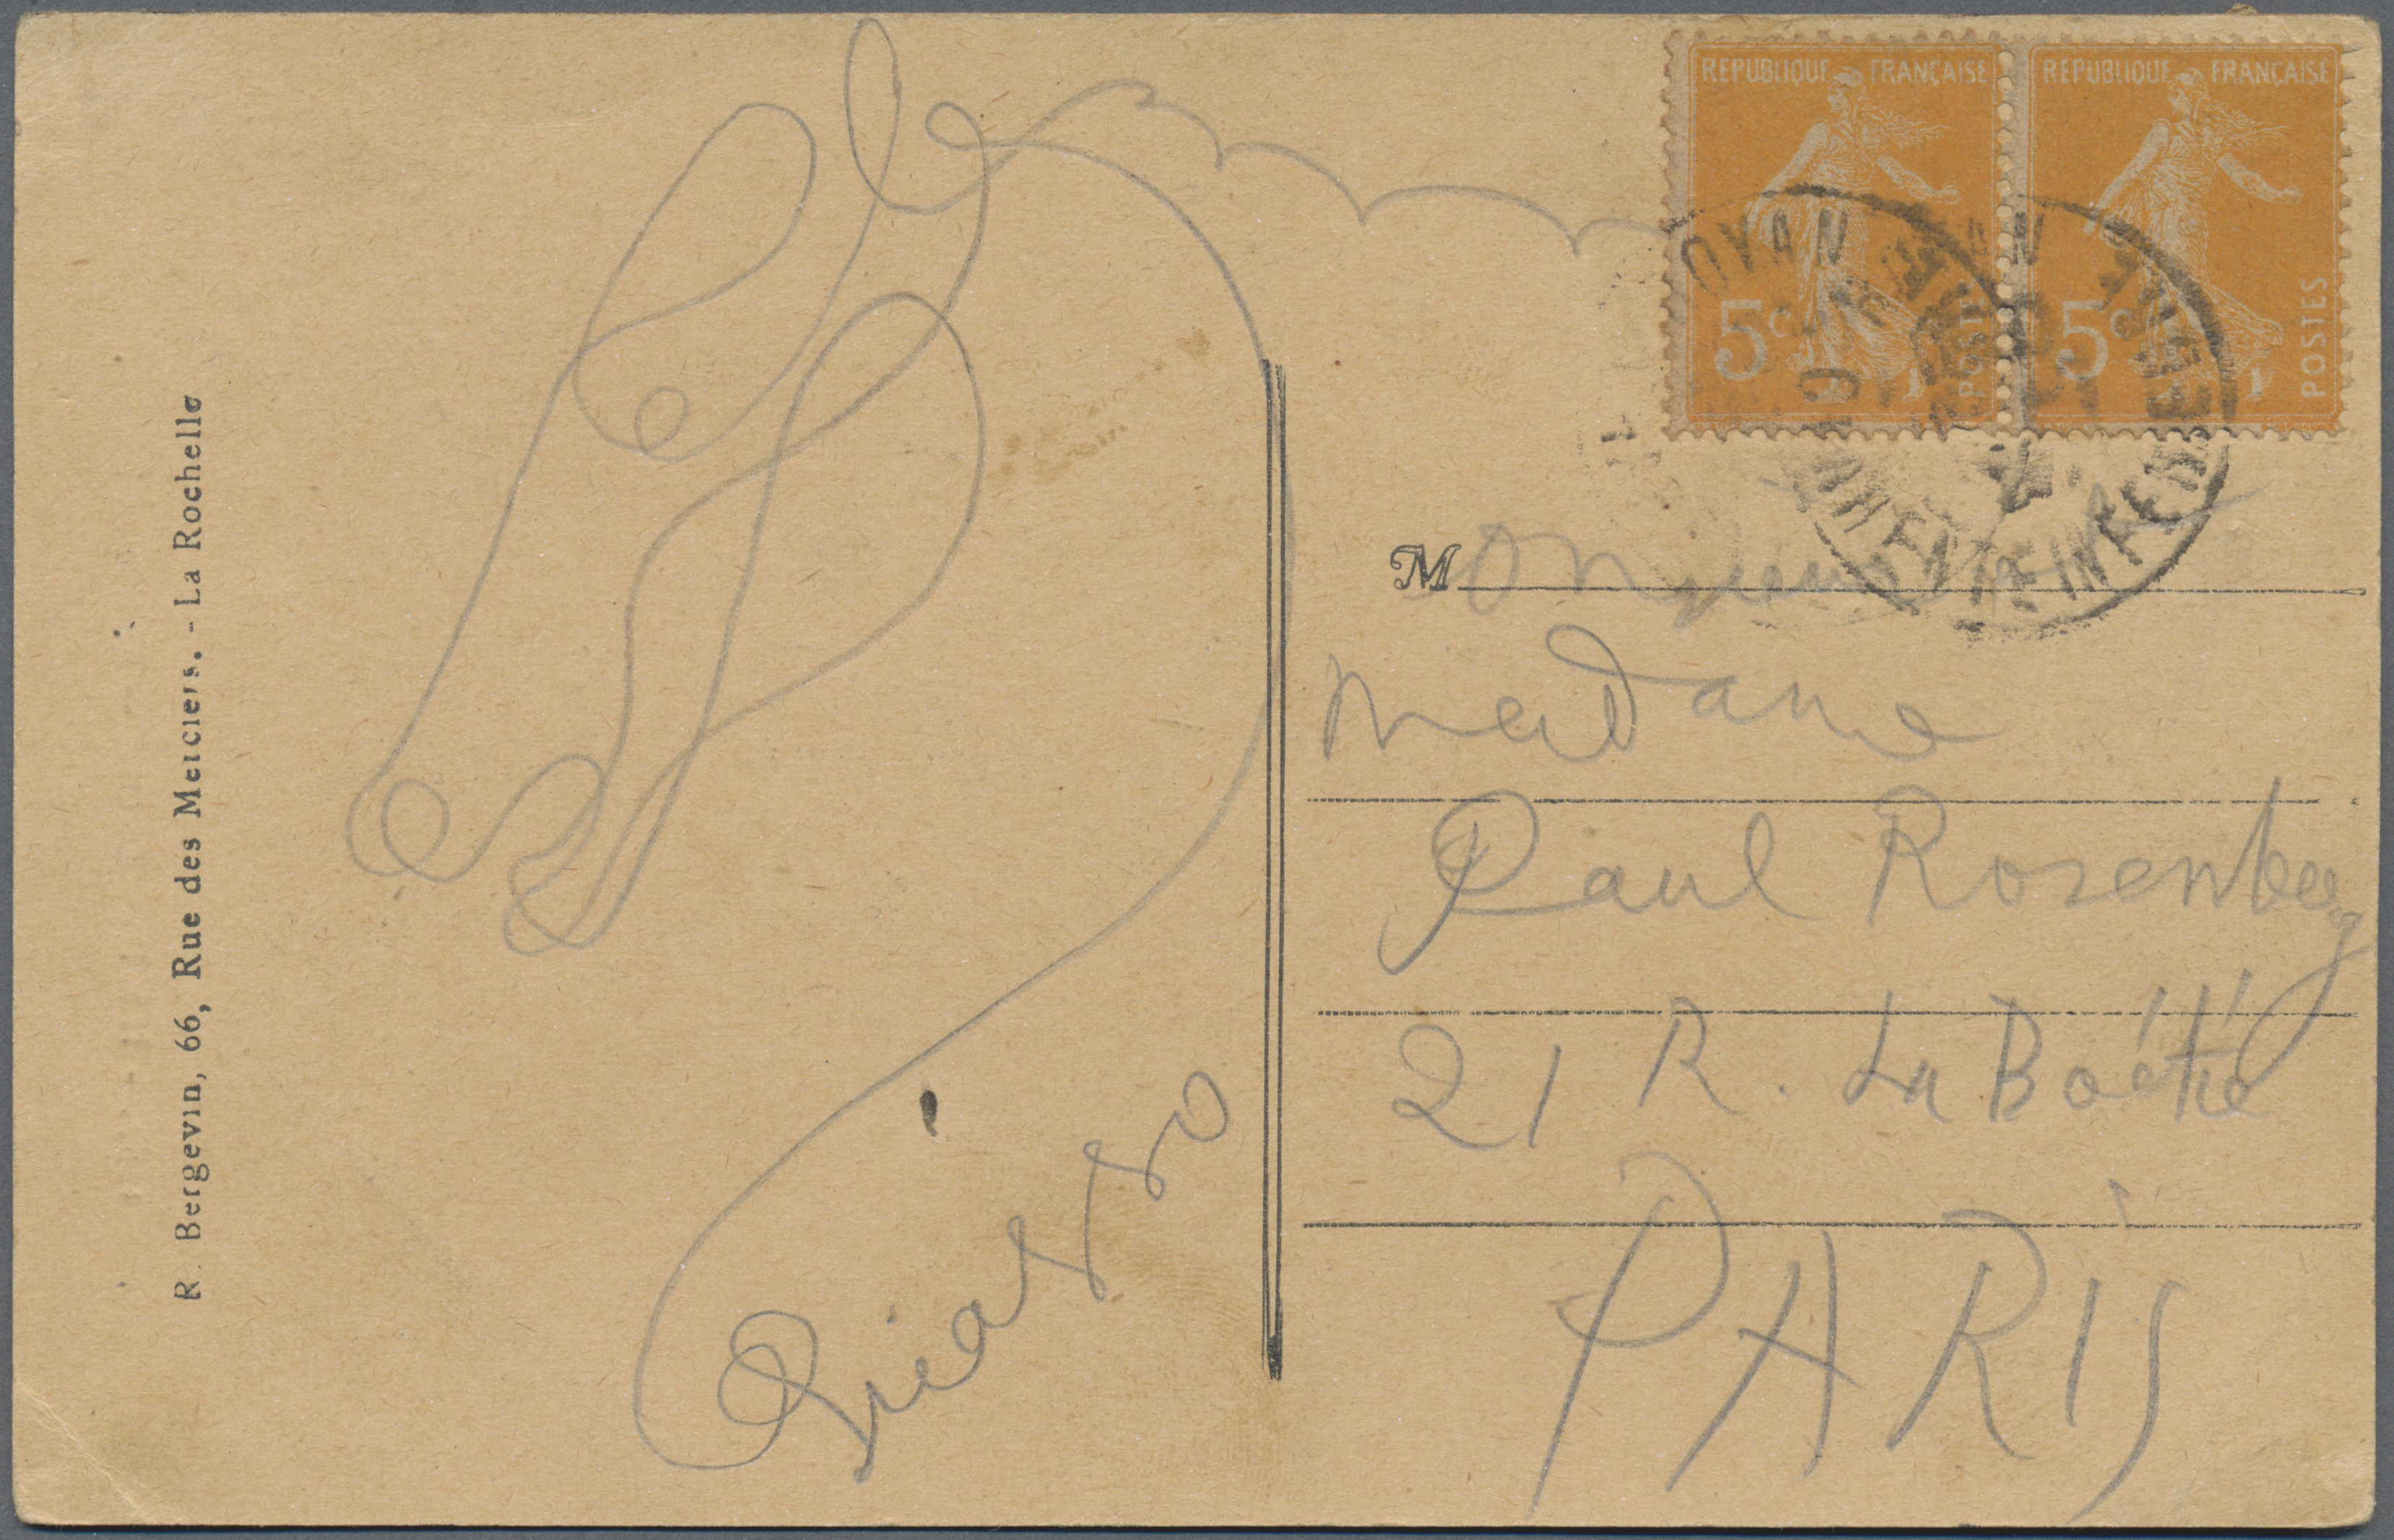 Lot 25437 - autographen  -  Auktionshaus Christoph Gärtner GmbH & Co. KG Single lots Germany + Picture Postcards. Auction #39 Day 5